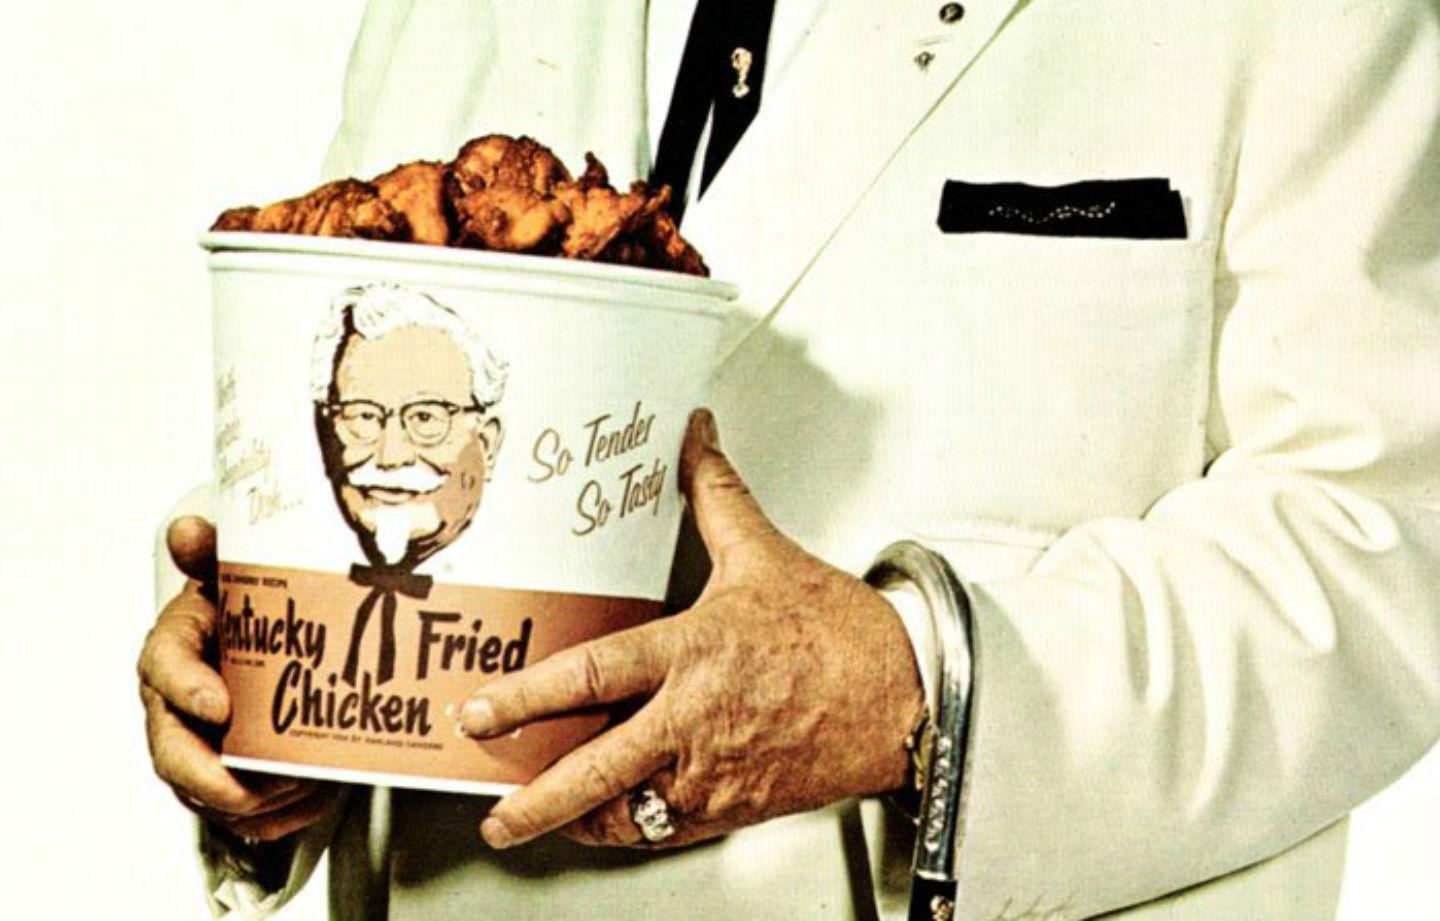 25 Things You Didn\'t Know About Your Favorite Fast Food Chains Gallery